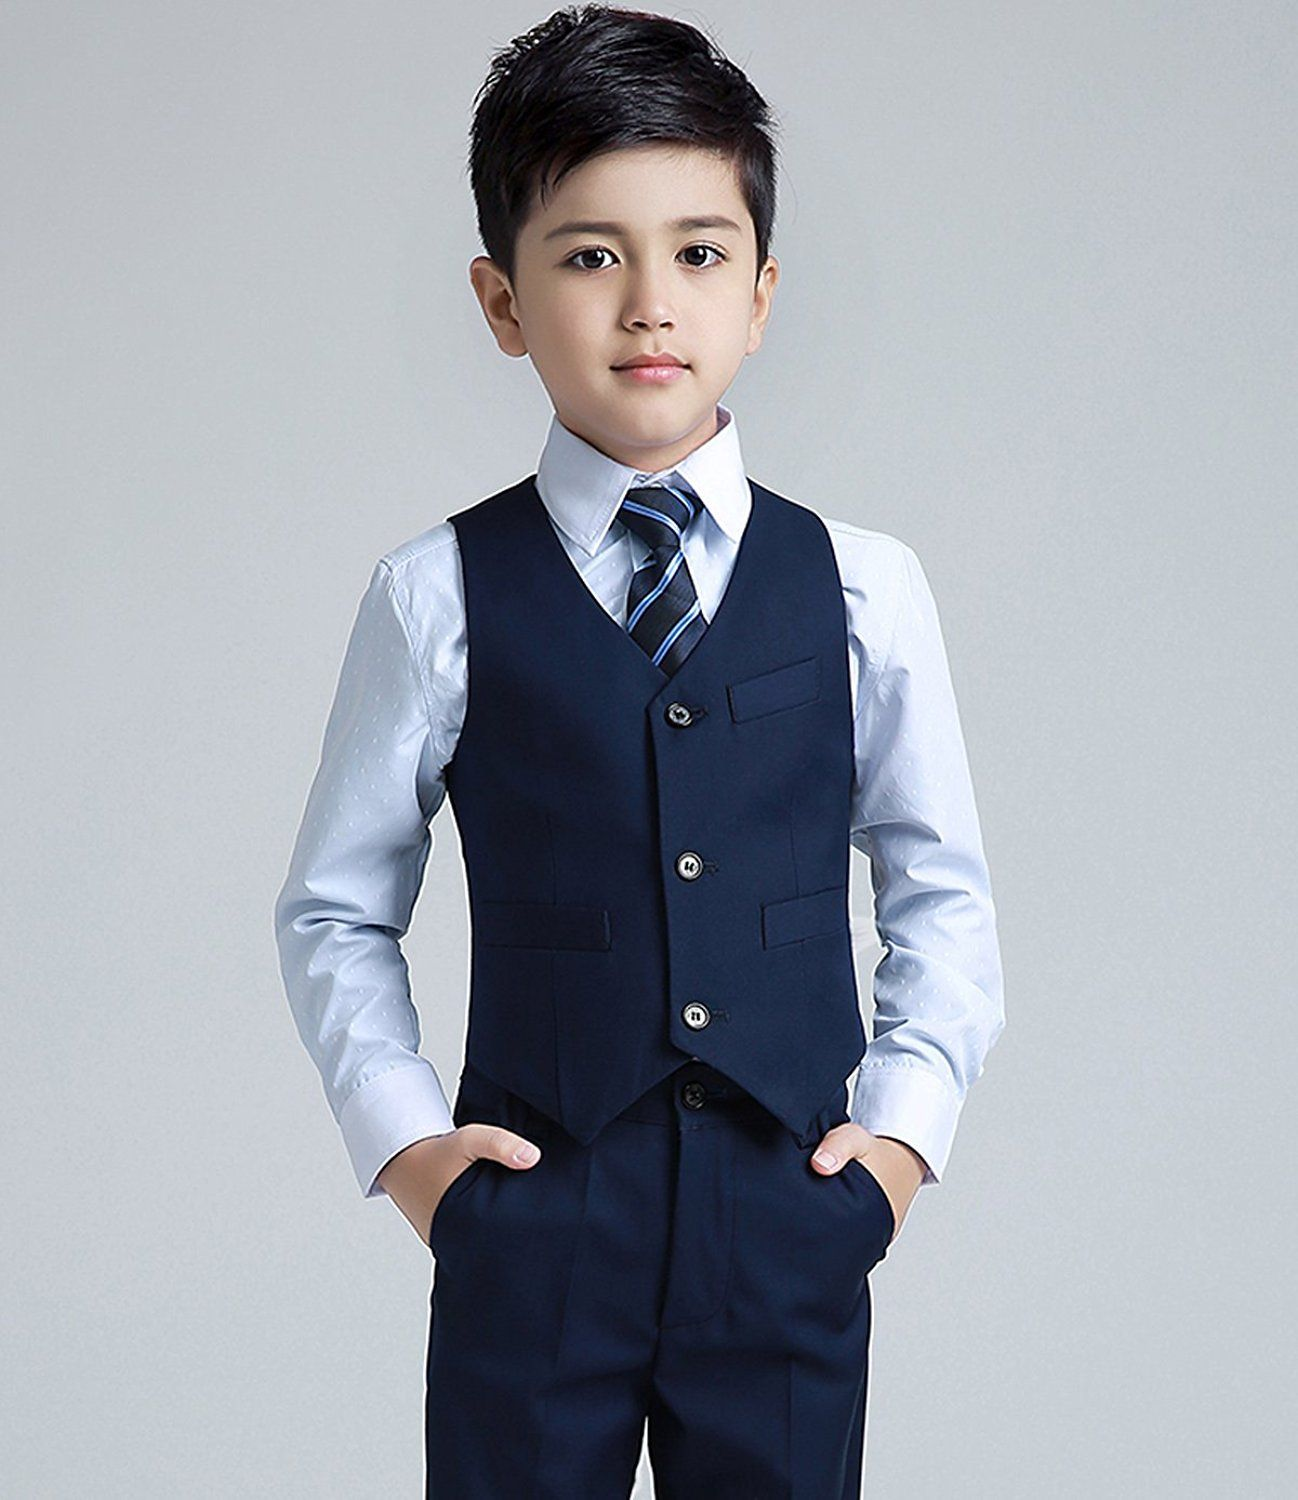 1e9f13228 Yuanlu Boys Formal Suits 5 Piece Slim Fit Dresswear Suit Set 2 Years Navy  Blue: Amazon.co.uk: Clothing